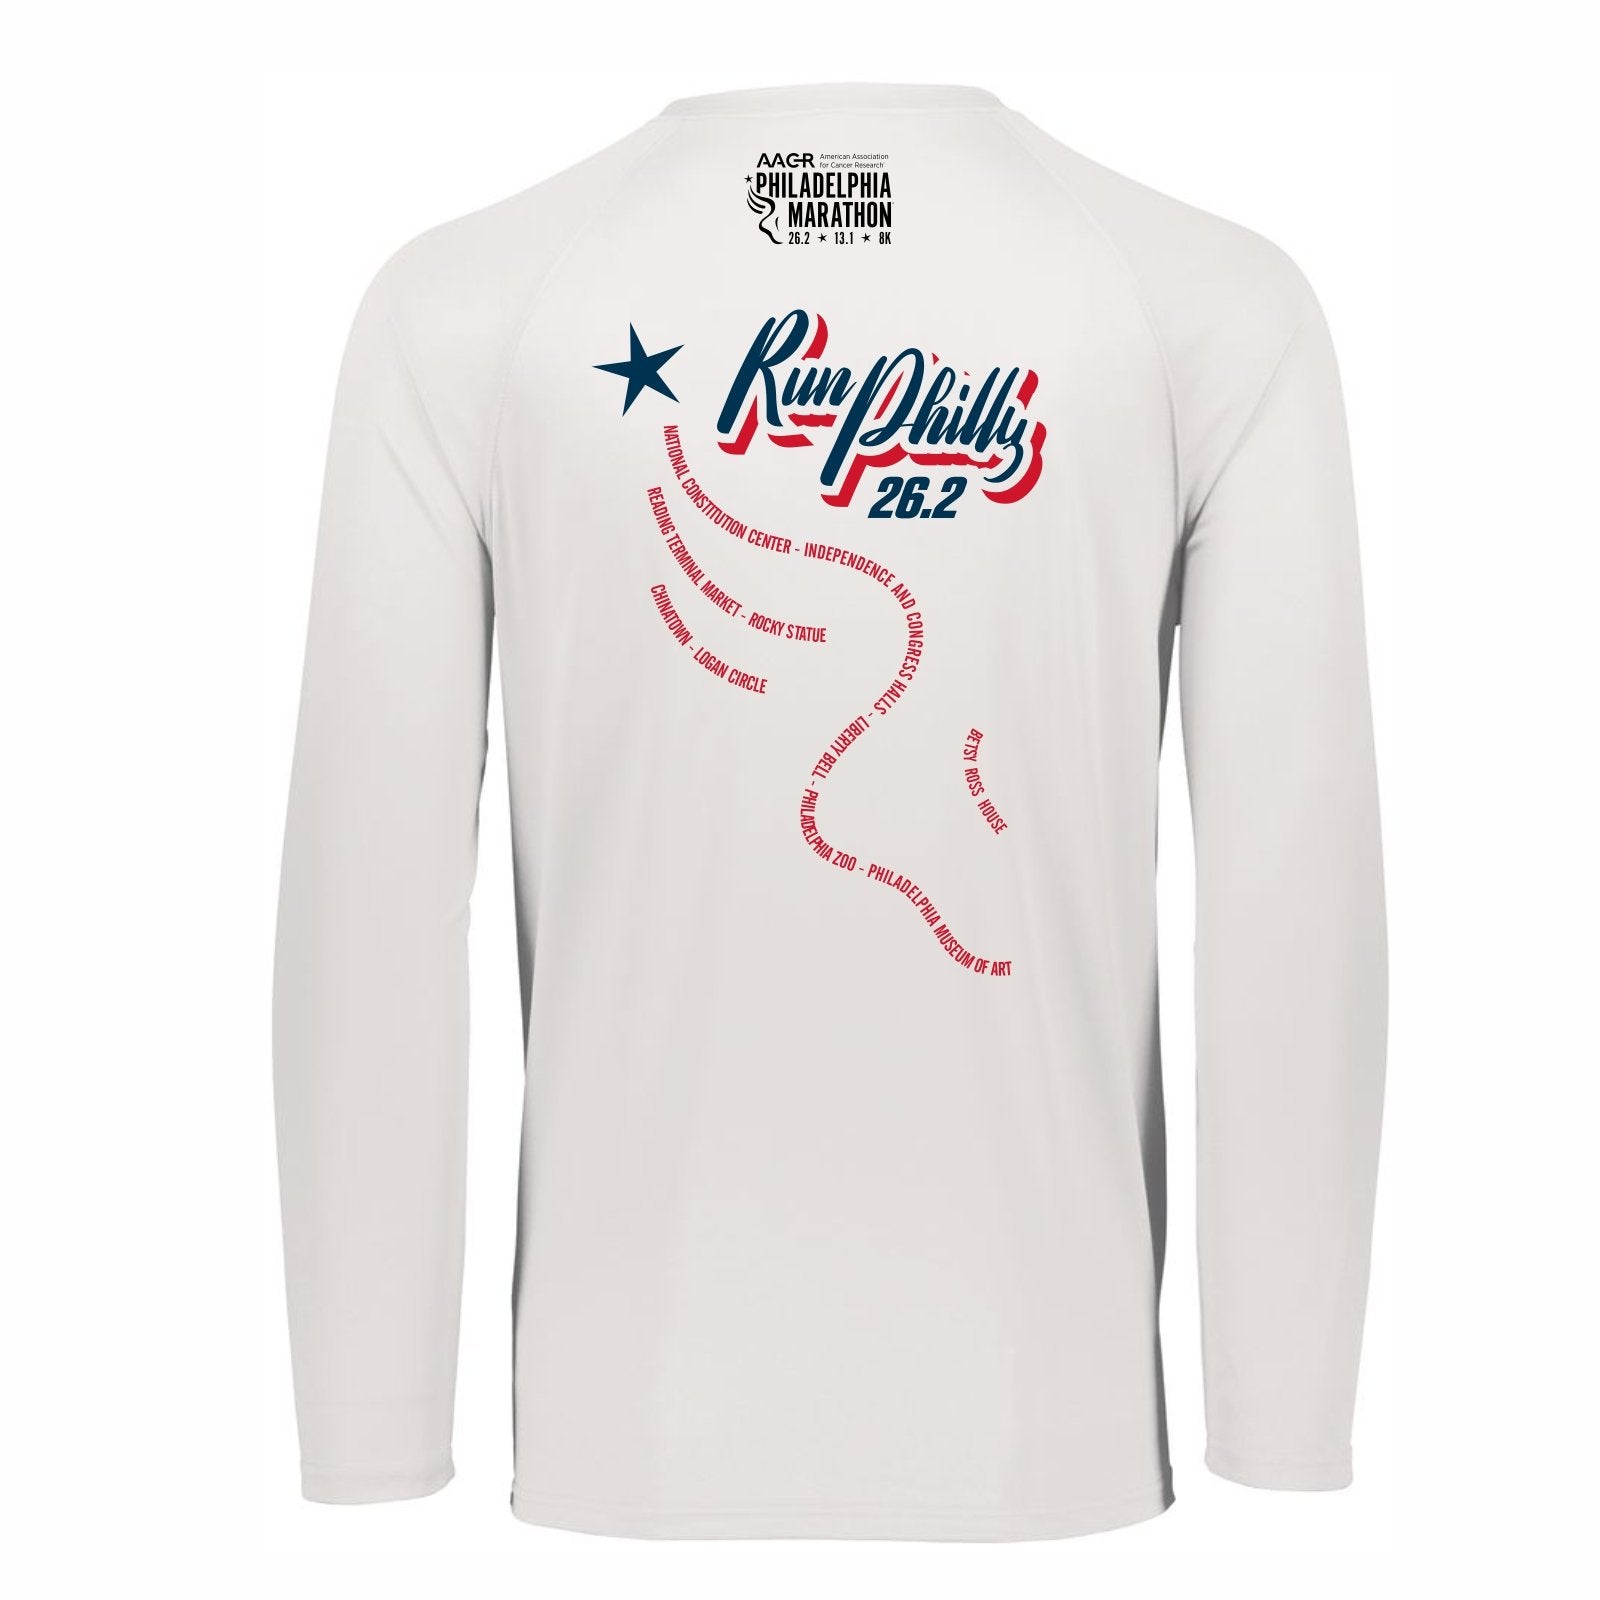 Women's LS Tech V-Neck Tee -White 'AACR 2019 Course Design' - AACR Philadelphia Marathon